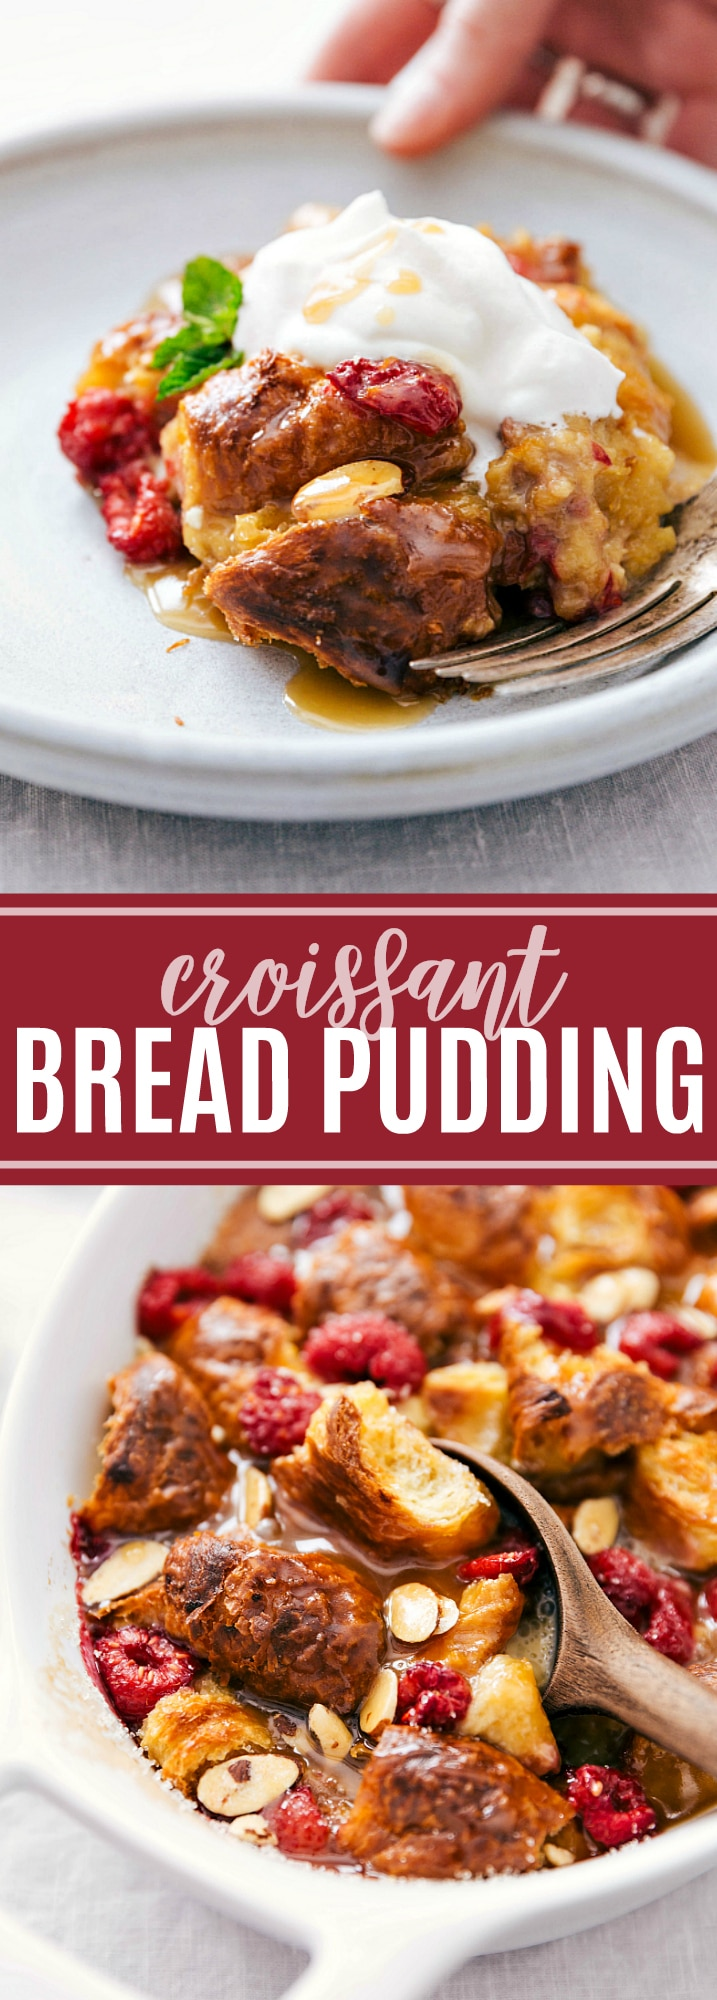 The best homemade bread pudding recipe with fresh raspberries, whipped cream, and a delicious vanilla sauce. Tips & tricks plus a few